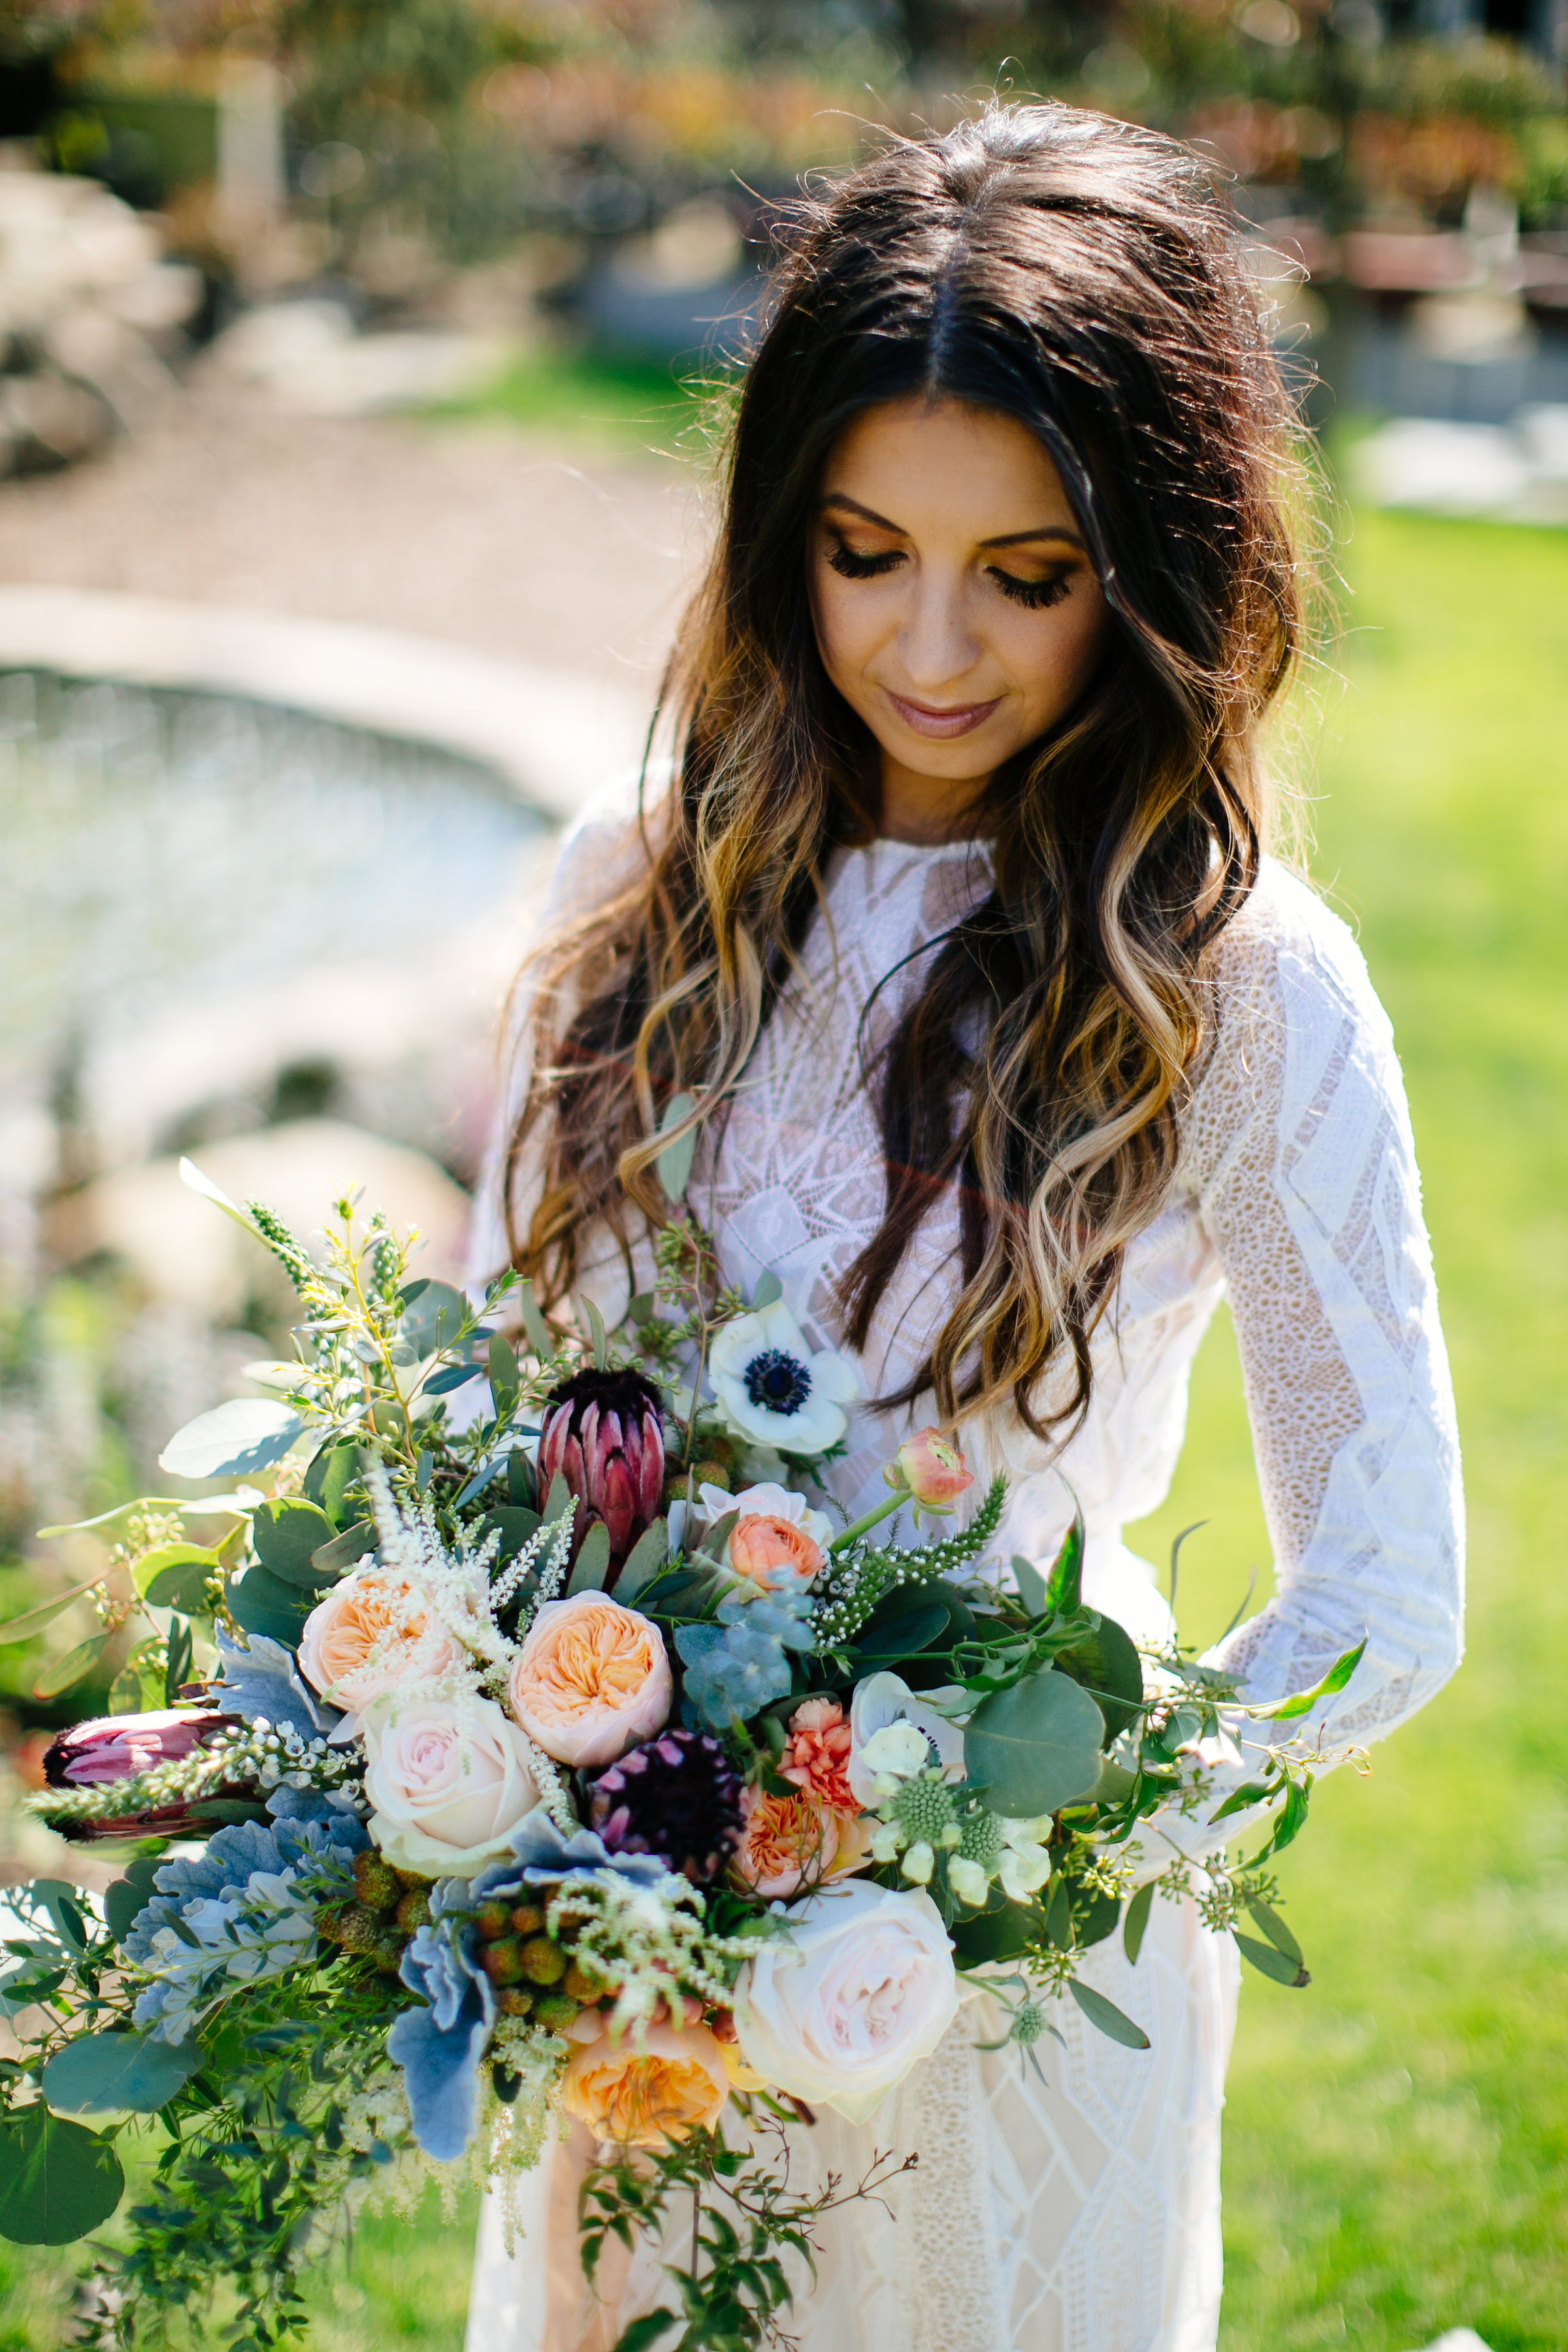 I mean, these flowers! Come ON! The model looks pretty darn good too.